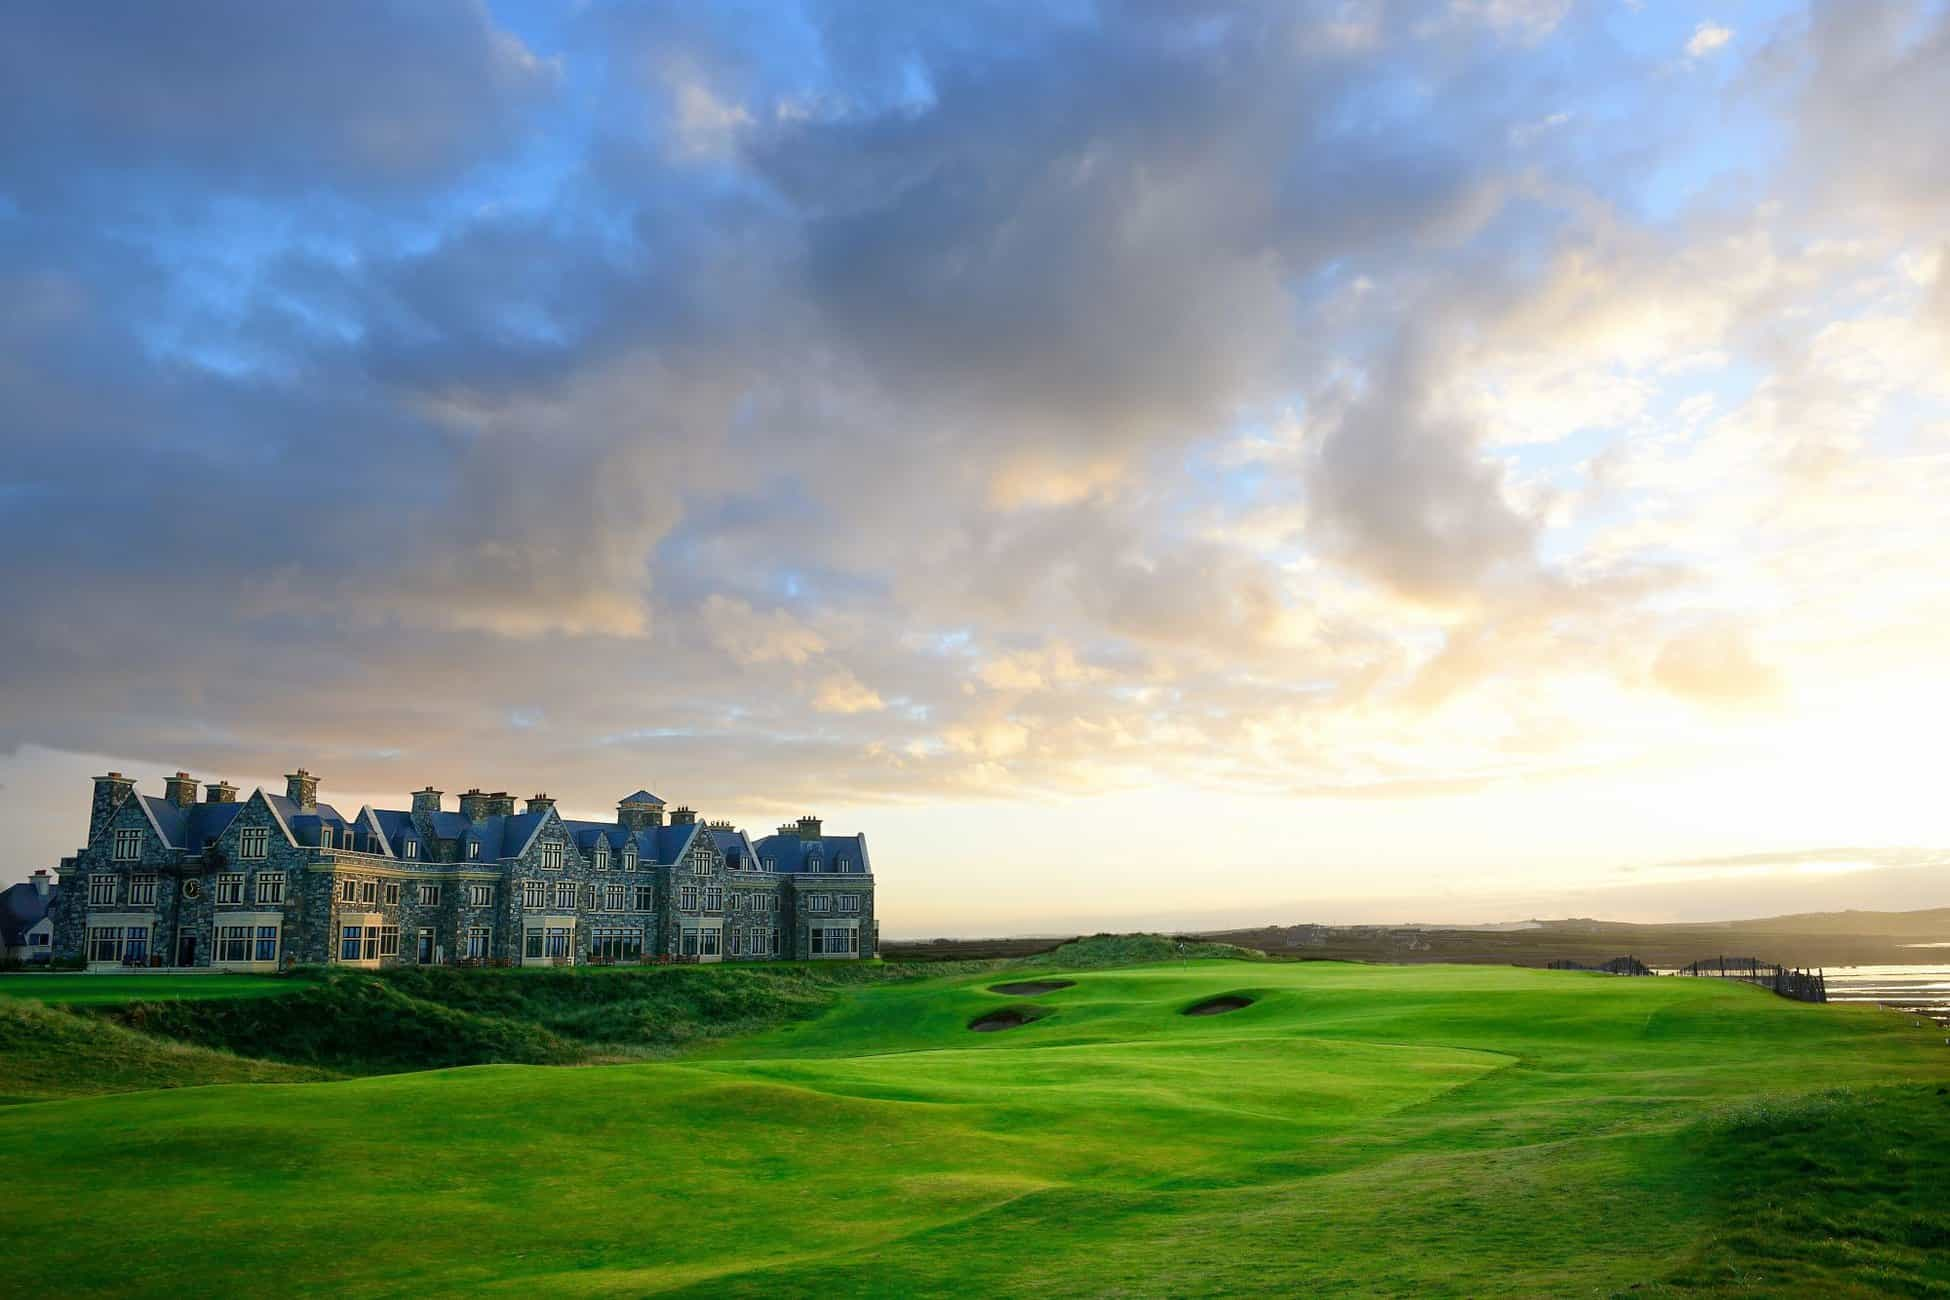 The approach to 18 at Doonbeg